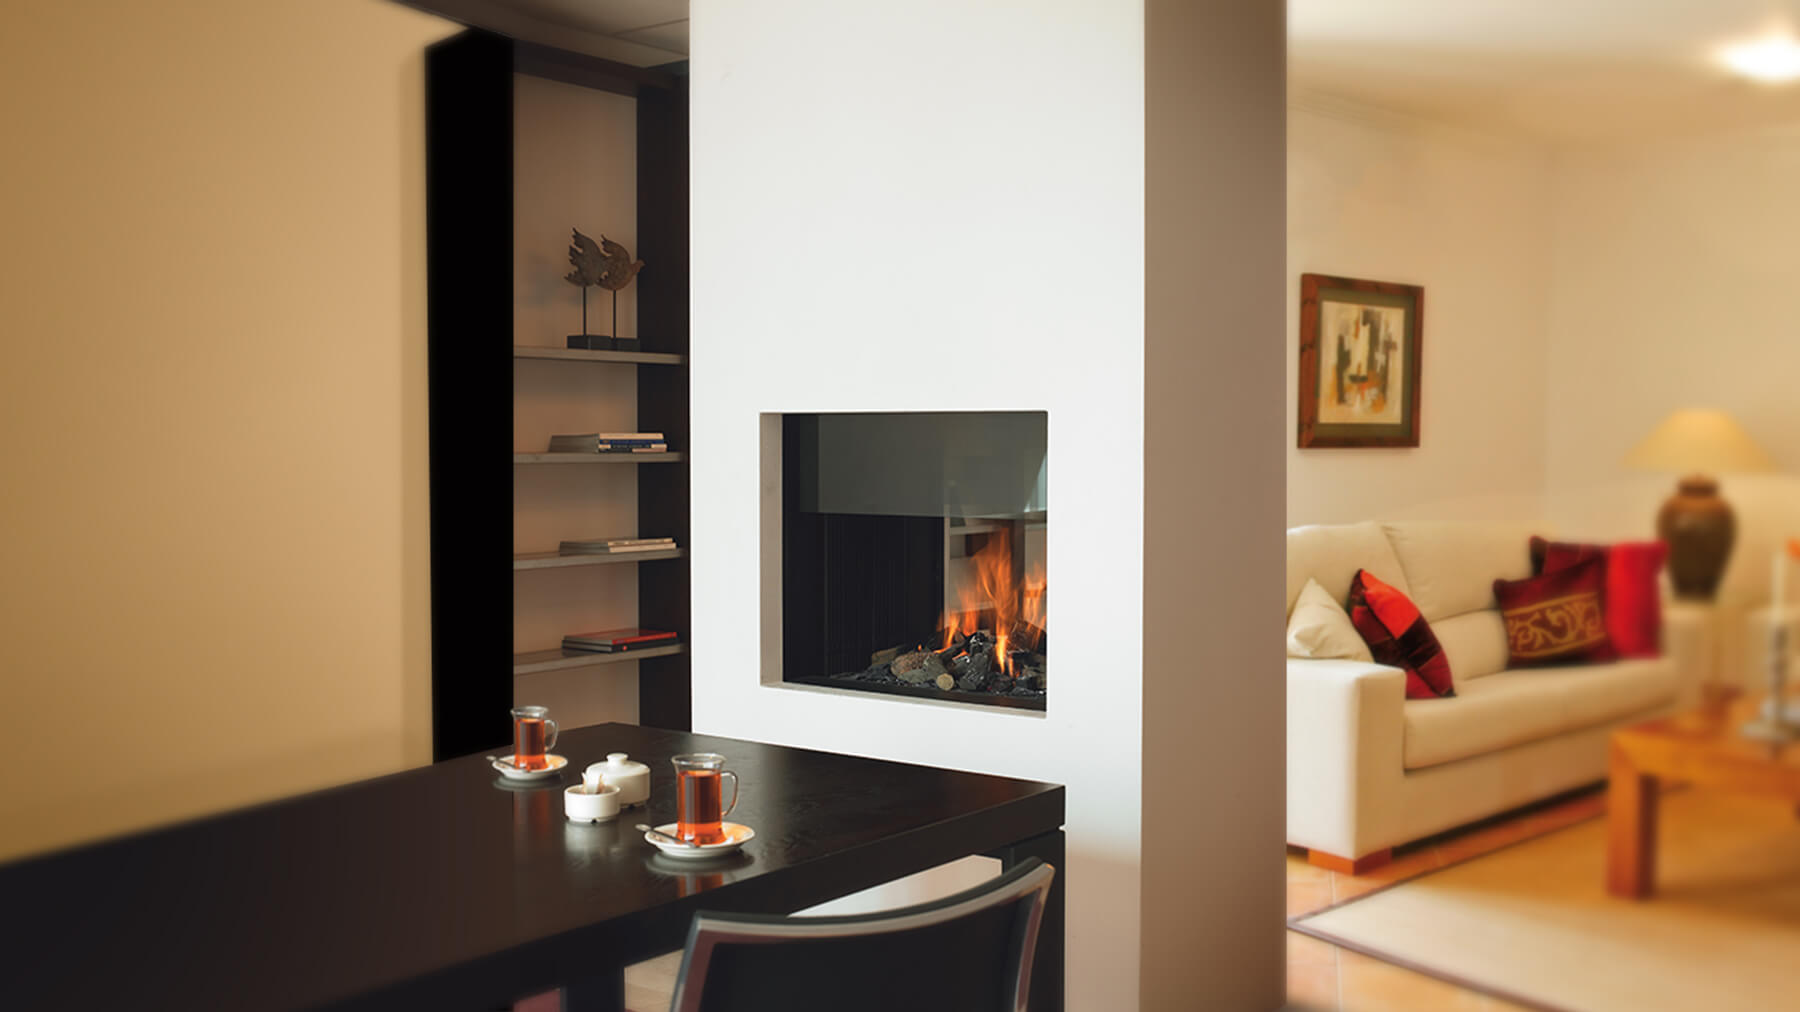 sided interior burning two new design fireplace best of insert inserts ideas gas wood double fireplaces beautiful tsumi